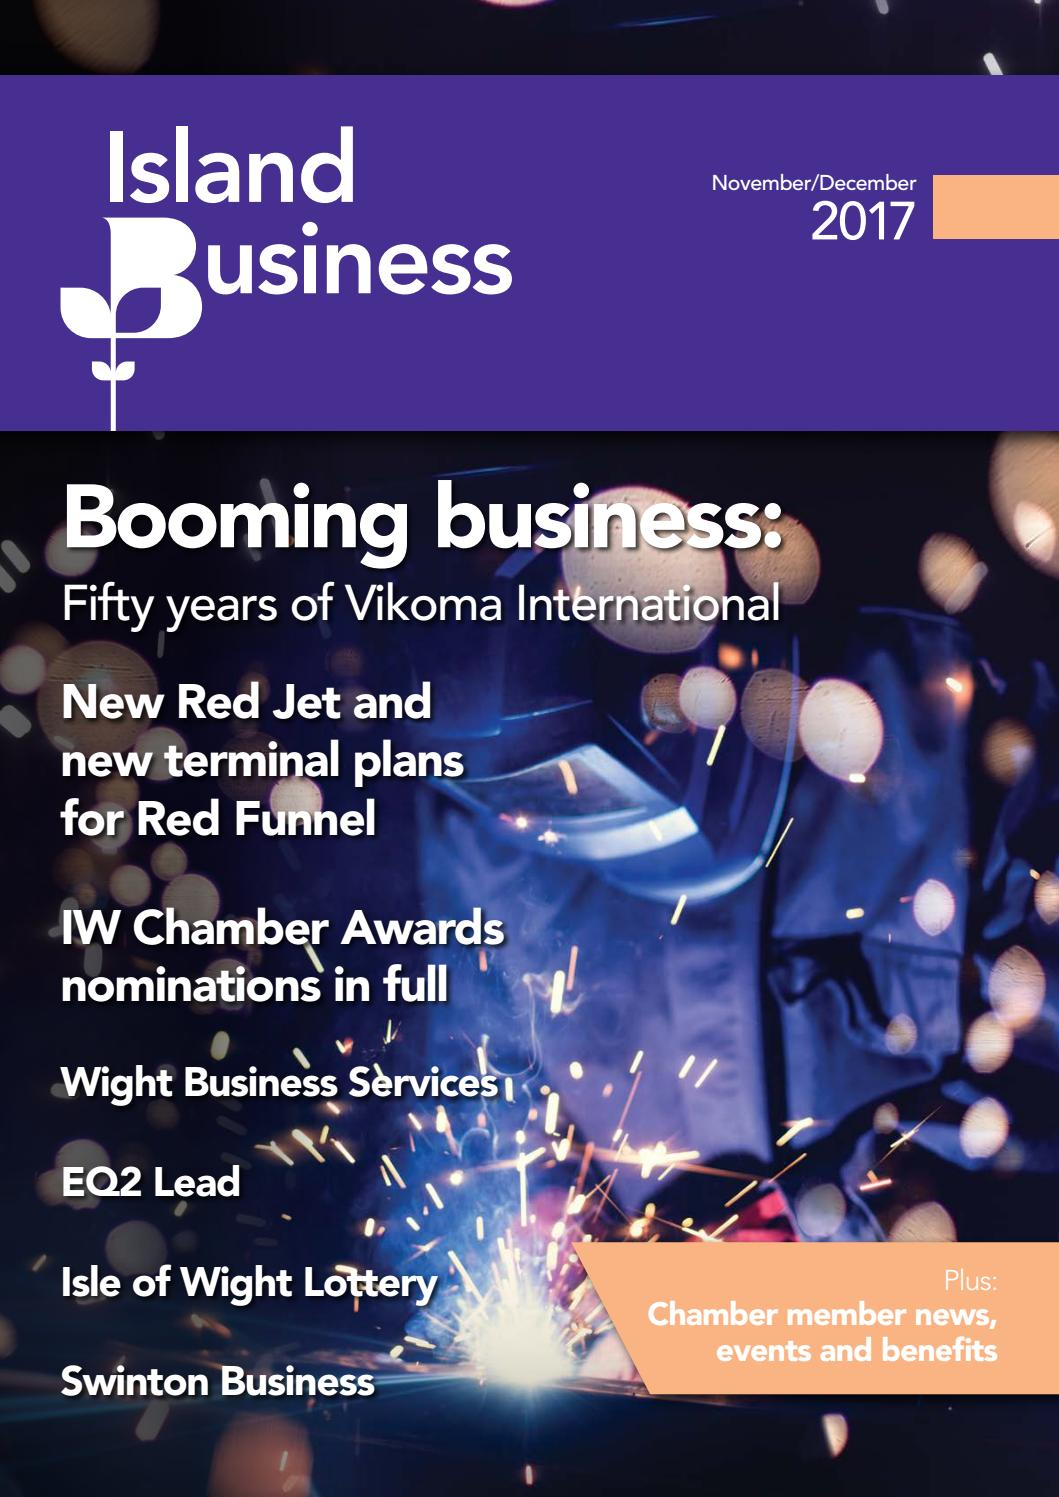 Island Business Nov / Dec 17 by Isle of Wight Chamber of